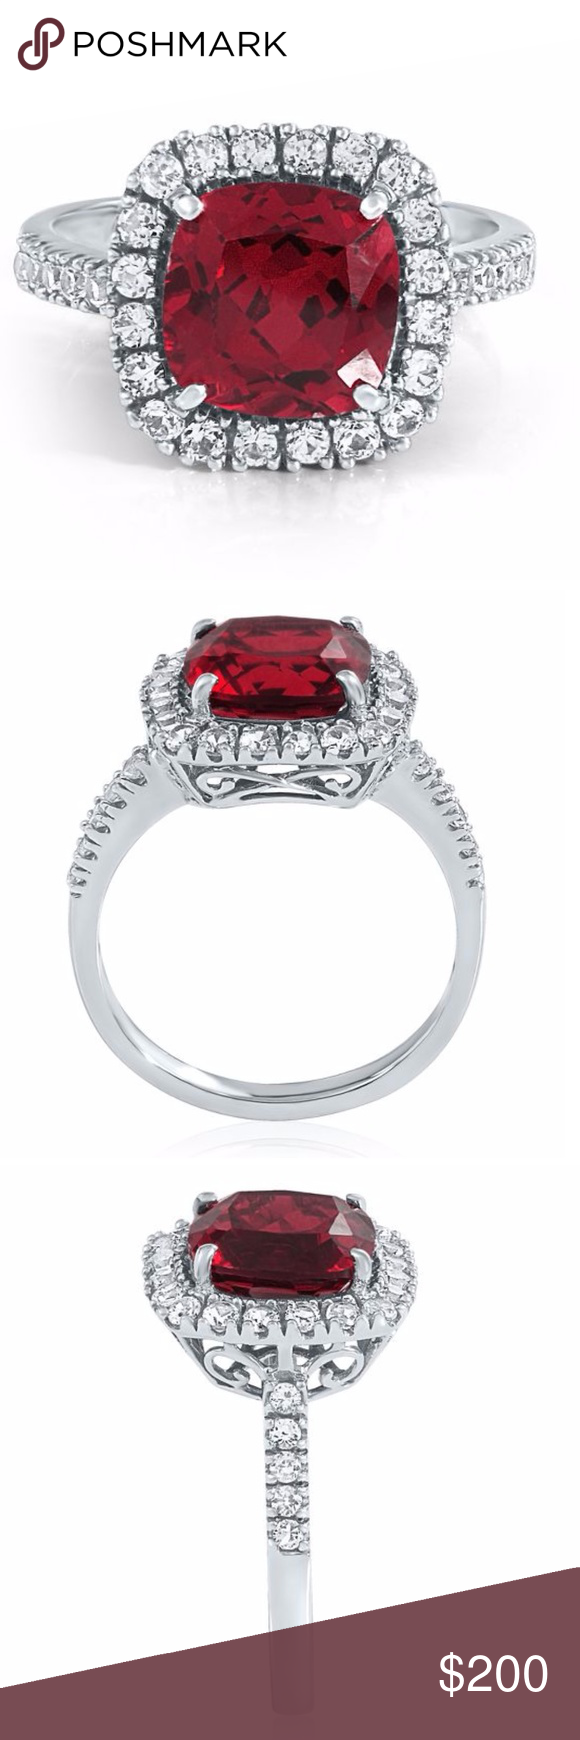 Label Helzberg Diamonds Ruby White Sapphire Ring White Sapphire Ring Helzberg Diamonds White Gold Ruby Ring